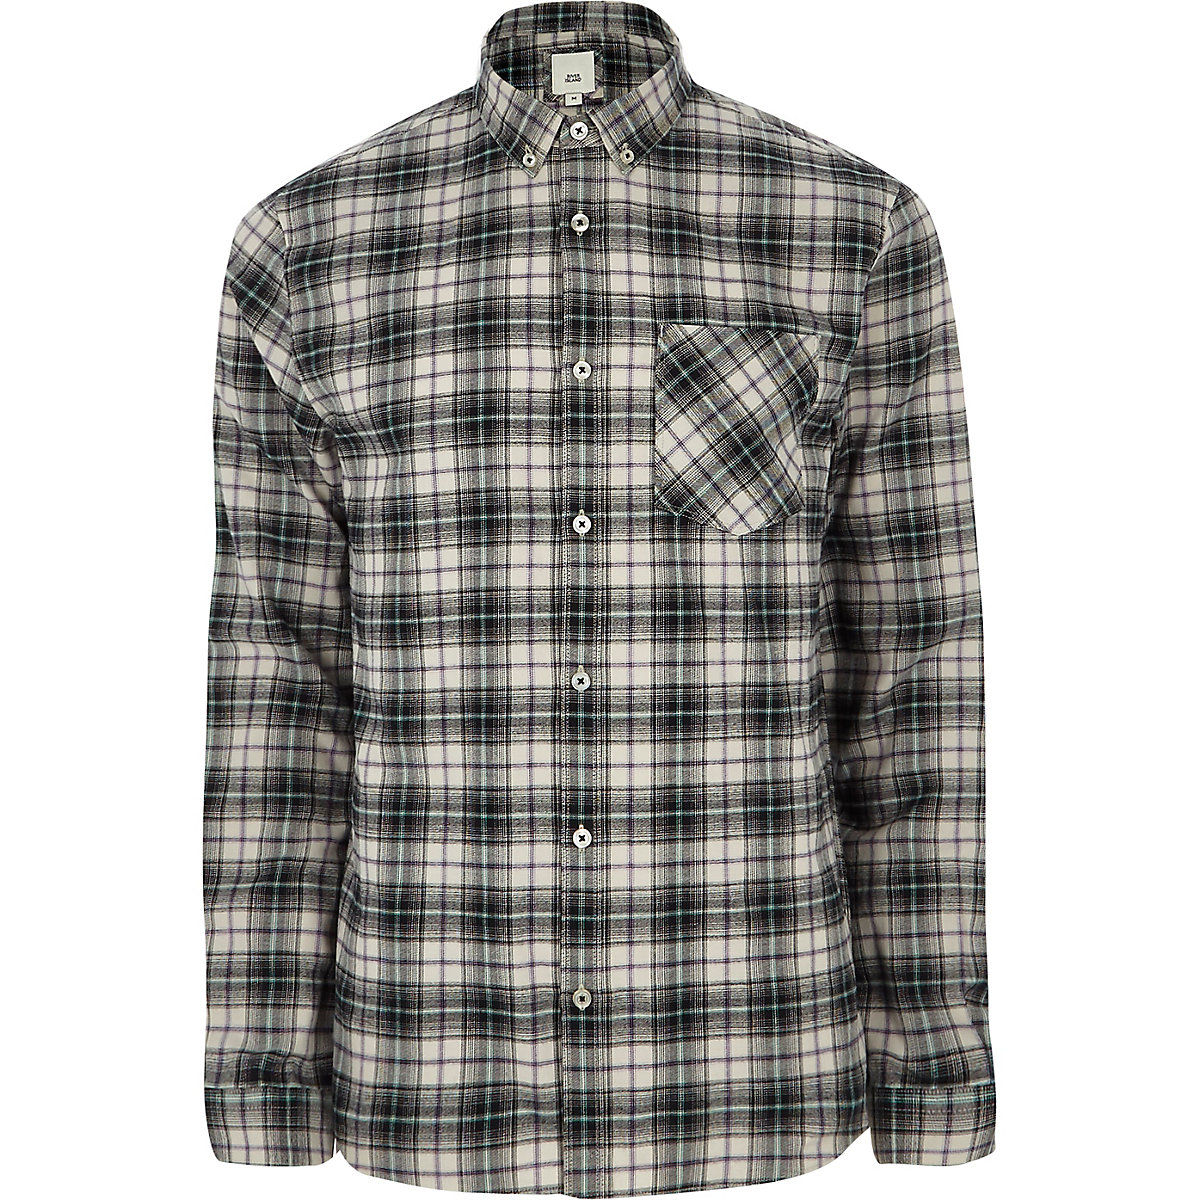 Grey check long sleeve button-down shirt